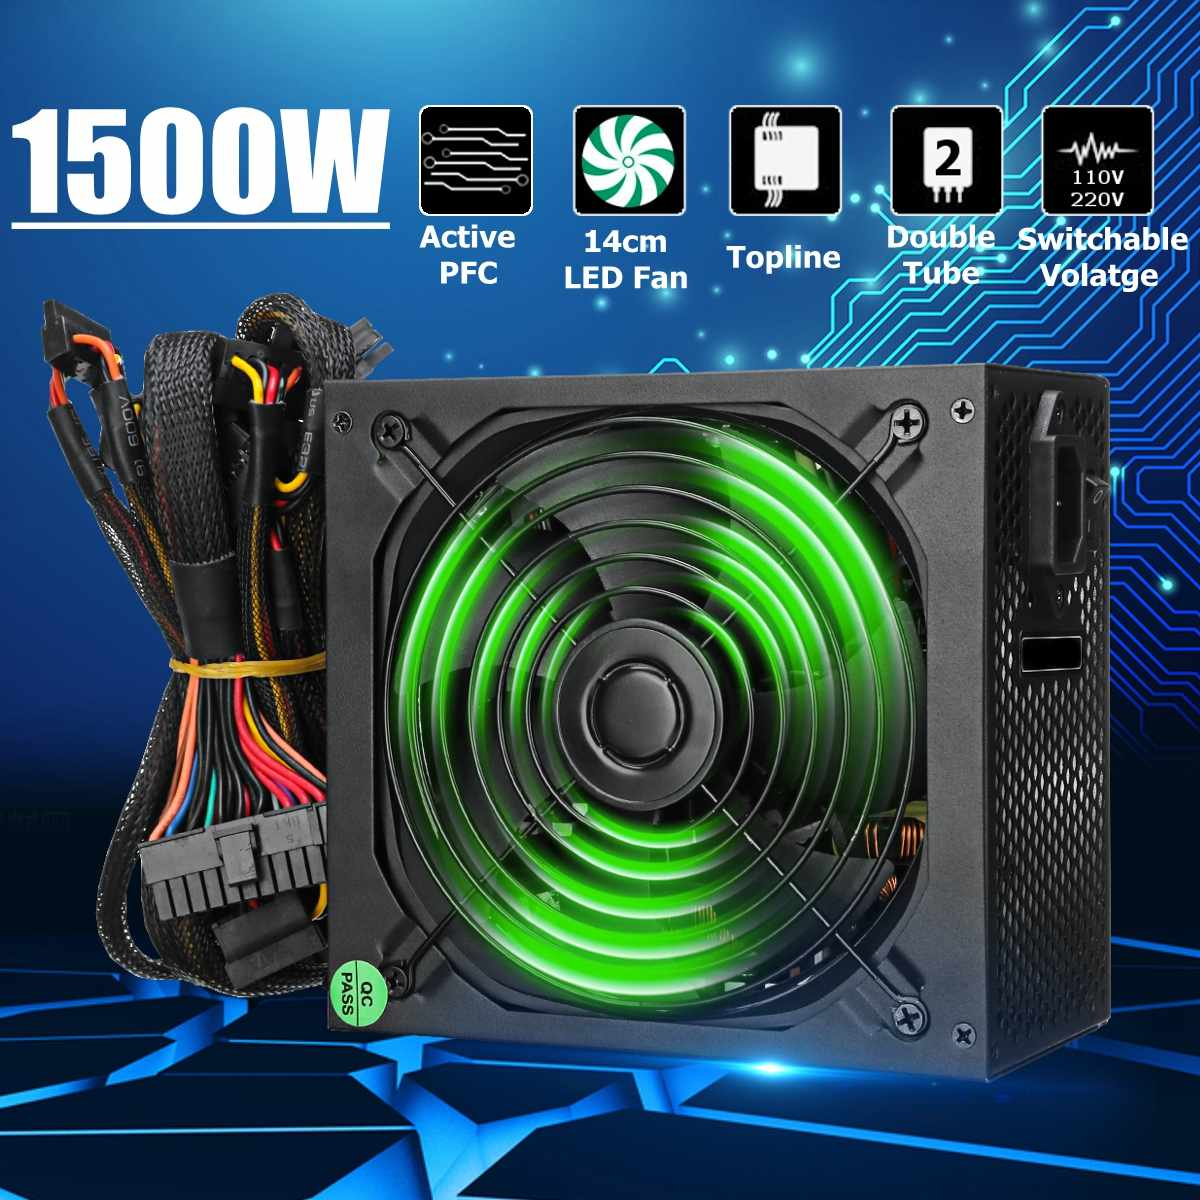 1500W PC Power Supply For Computer Active PFC Computer PC PSU 24Pin SATA LED Cooling Fan 80 Plus1500W PC Power Supply For Computer Active PFC Computer PC PSU 24Pin SATA LED Cooling Fan 80 Plus